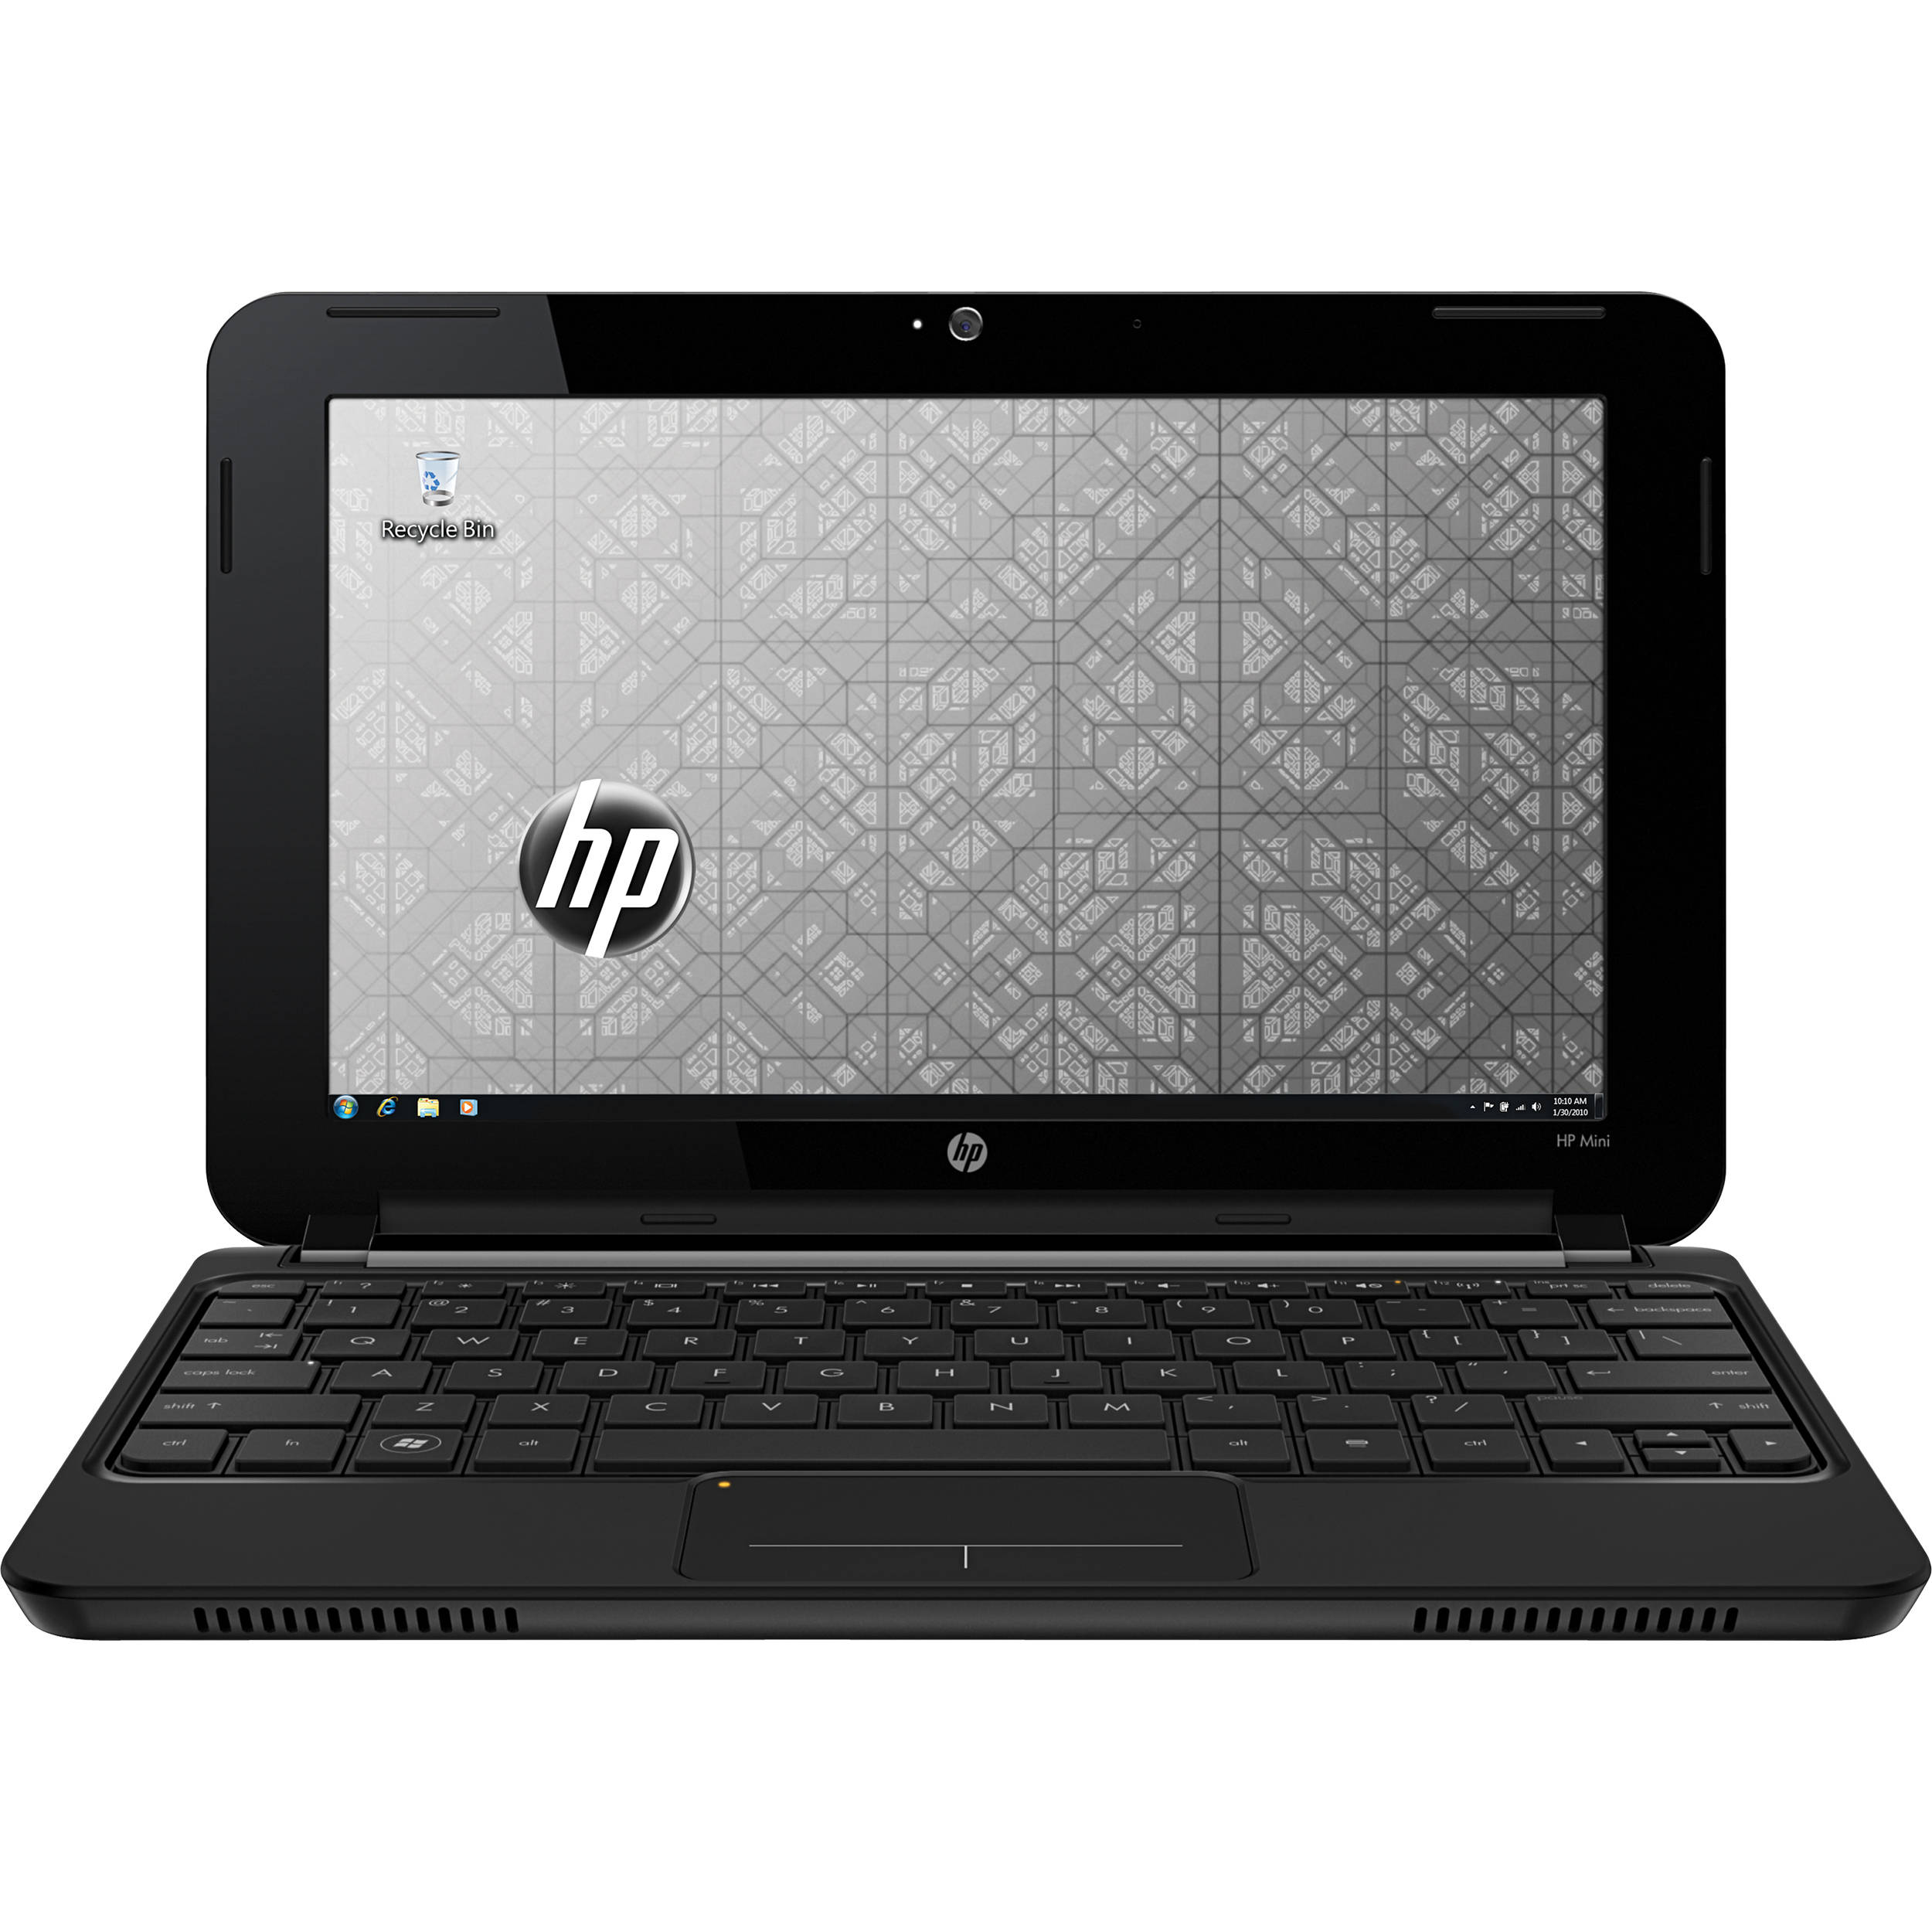 HP Mini 210-1150NR Notebook 64 BIT Driver